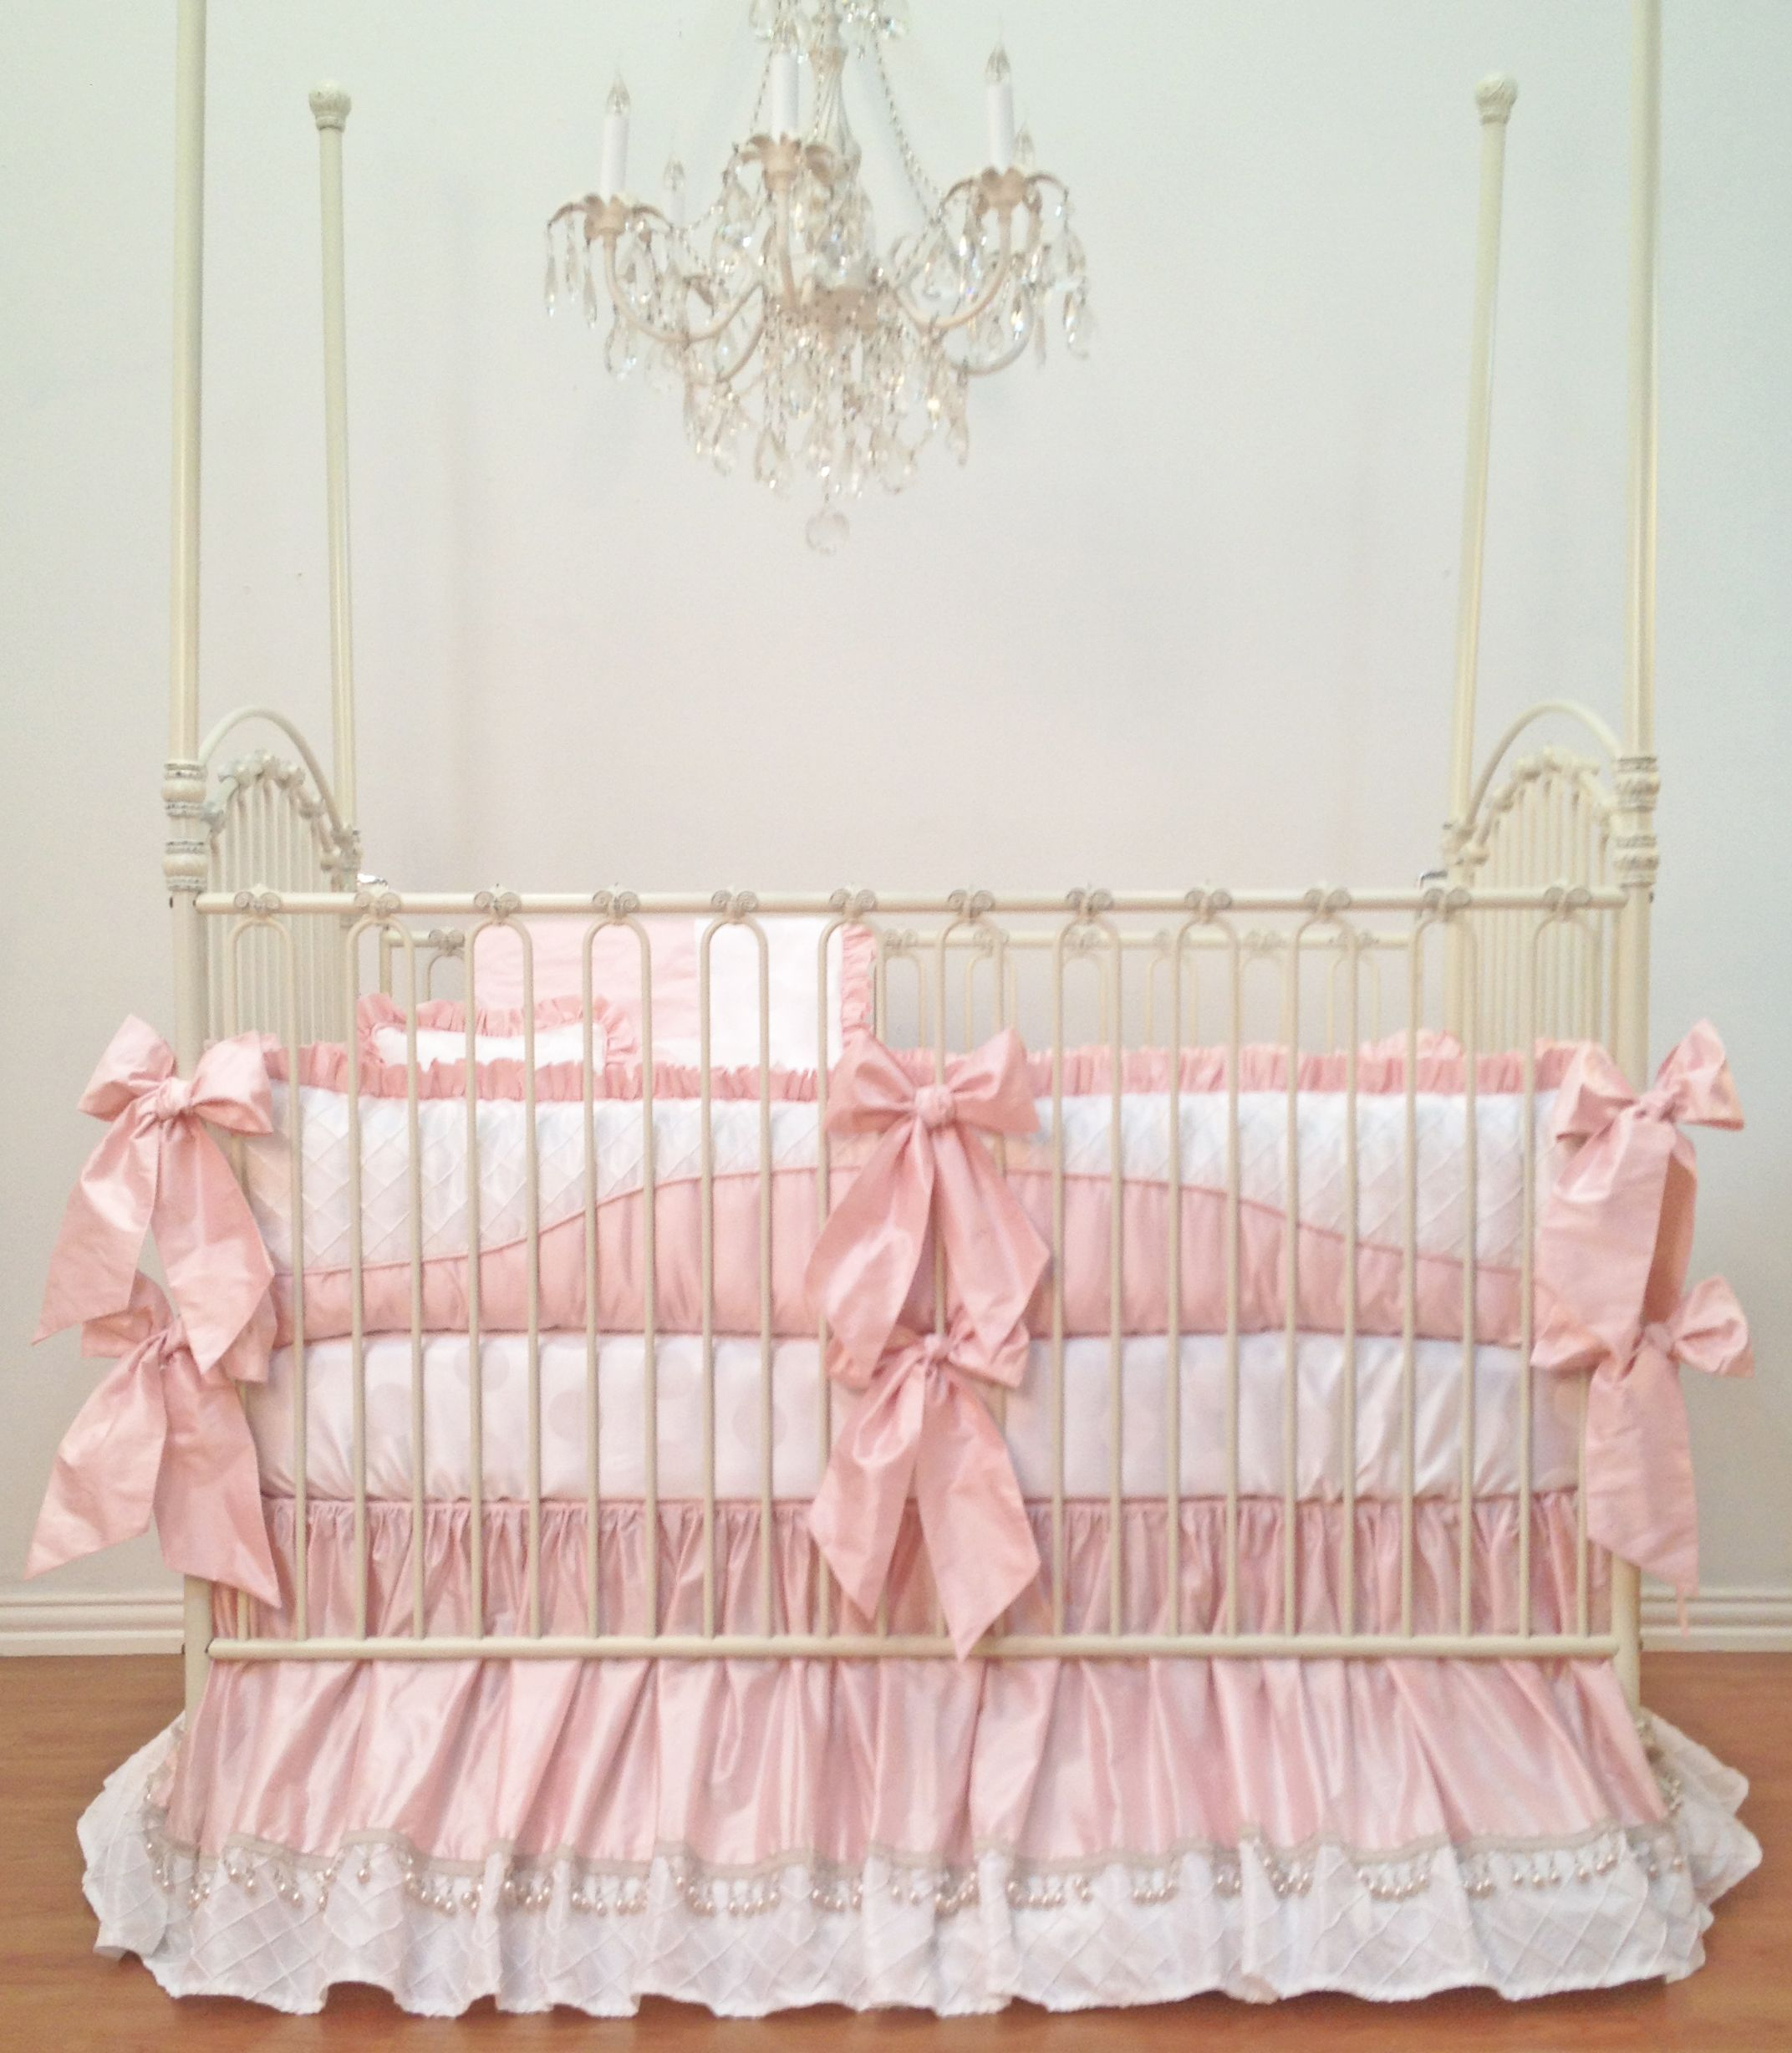 nursery cribs navy secure bedding sets target bedroom beautiful compact grey to mattress neutral shabby a size purple furniture western phones rebecca baby for design ways and your of make linen black white choose the room crib chic full easy